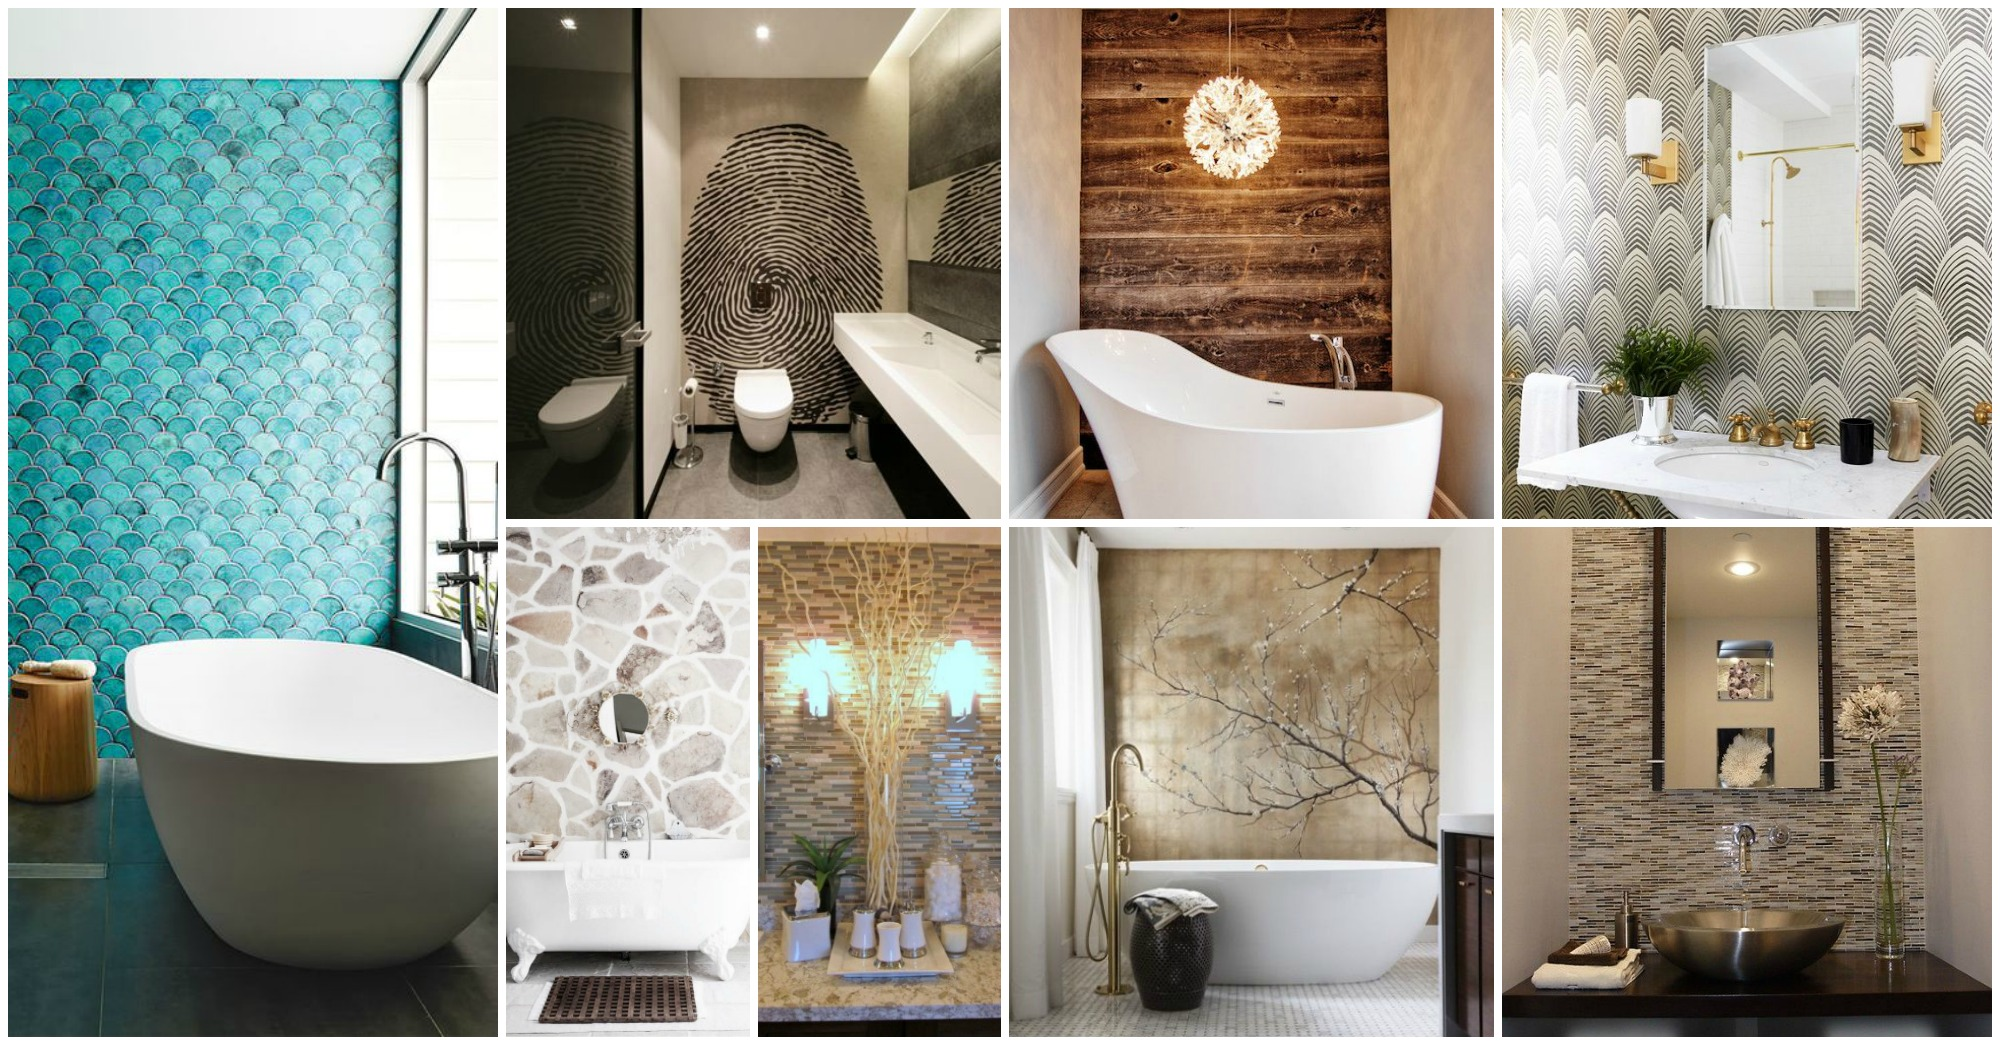 Which Wall Should Be The Accent Wall In A Bathroom